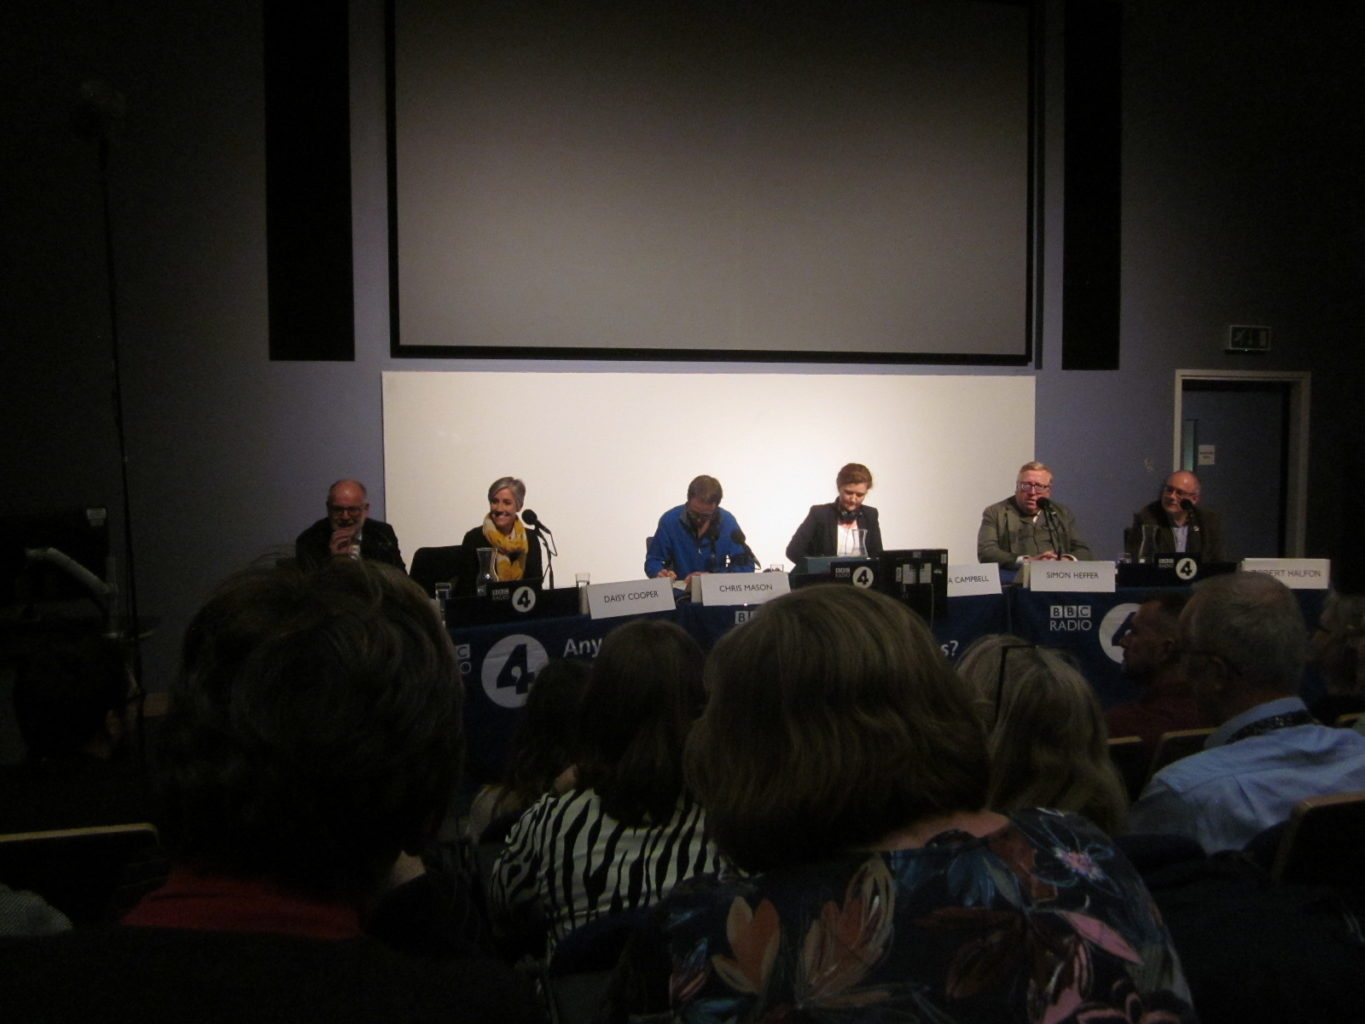 Any Questions panel